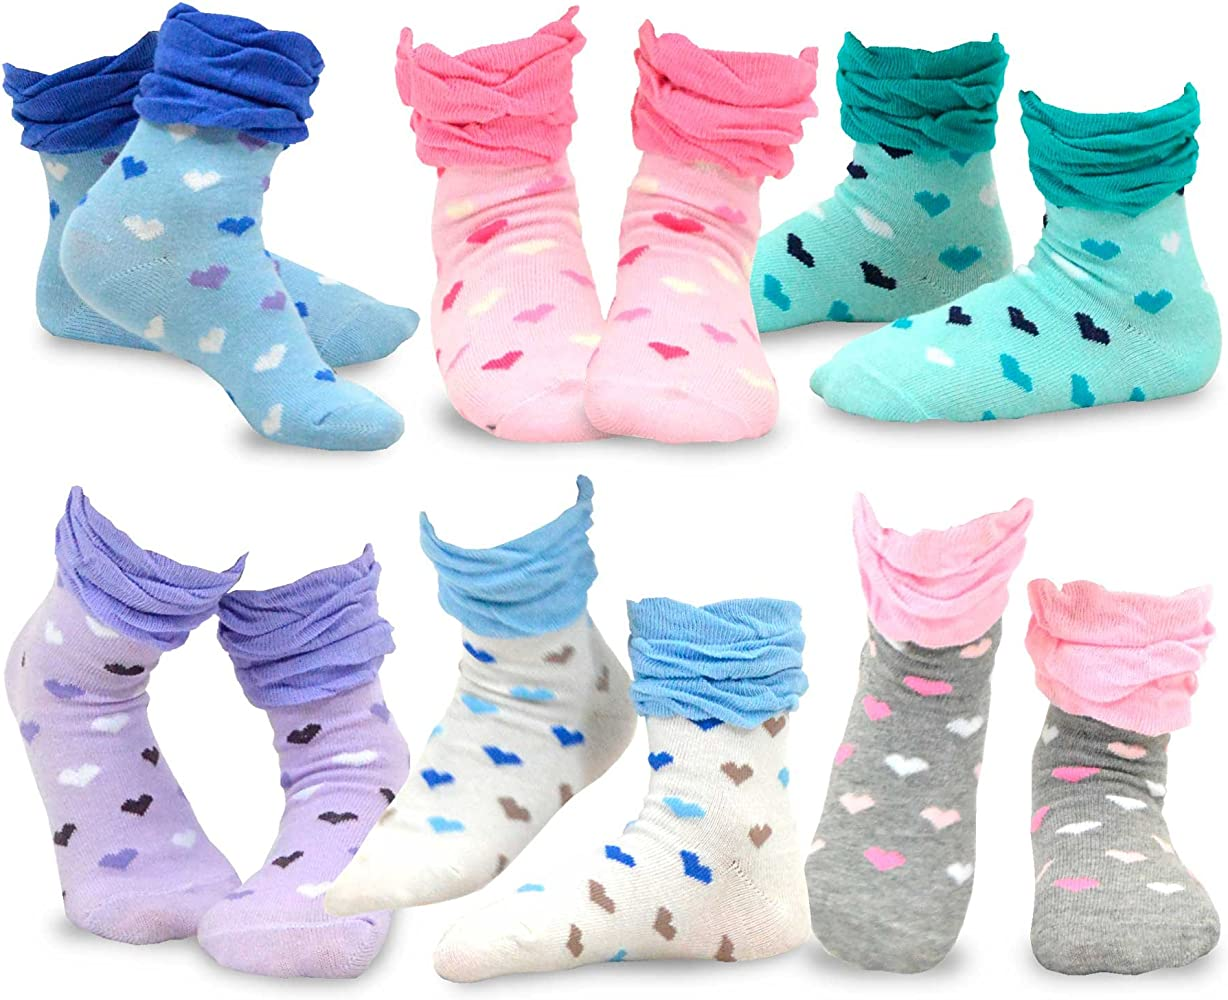 Roll Top Socks Age 12-24 months 4 pairs of Baby Girls Socks